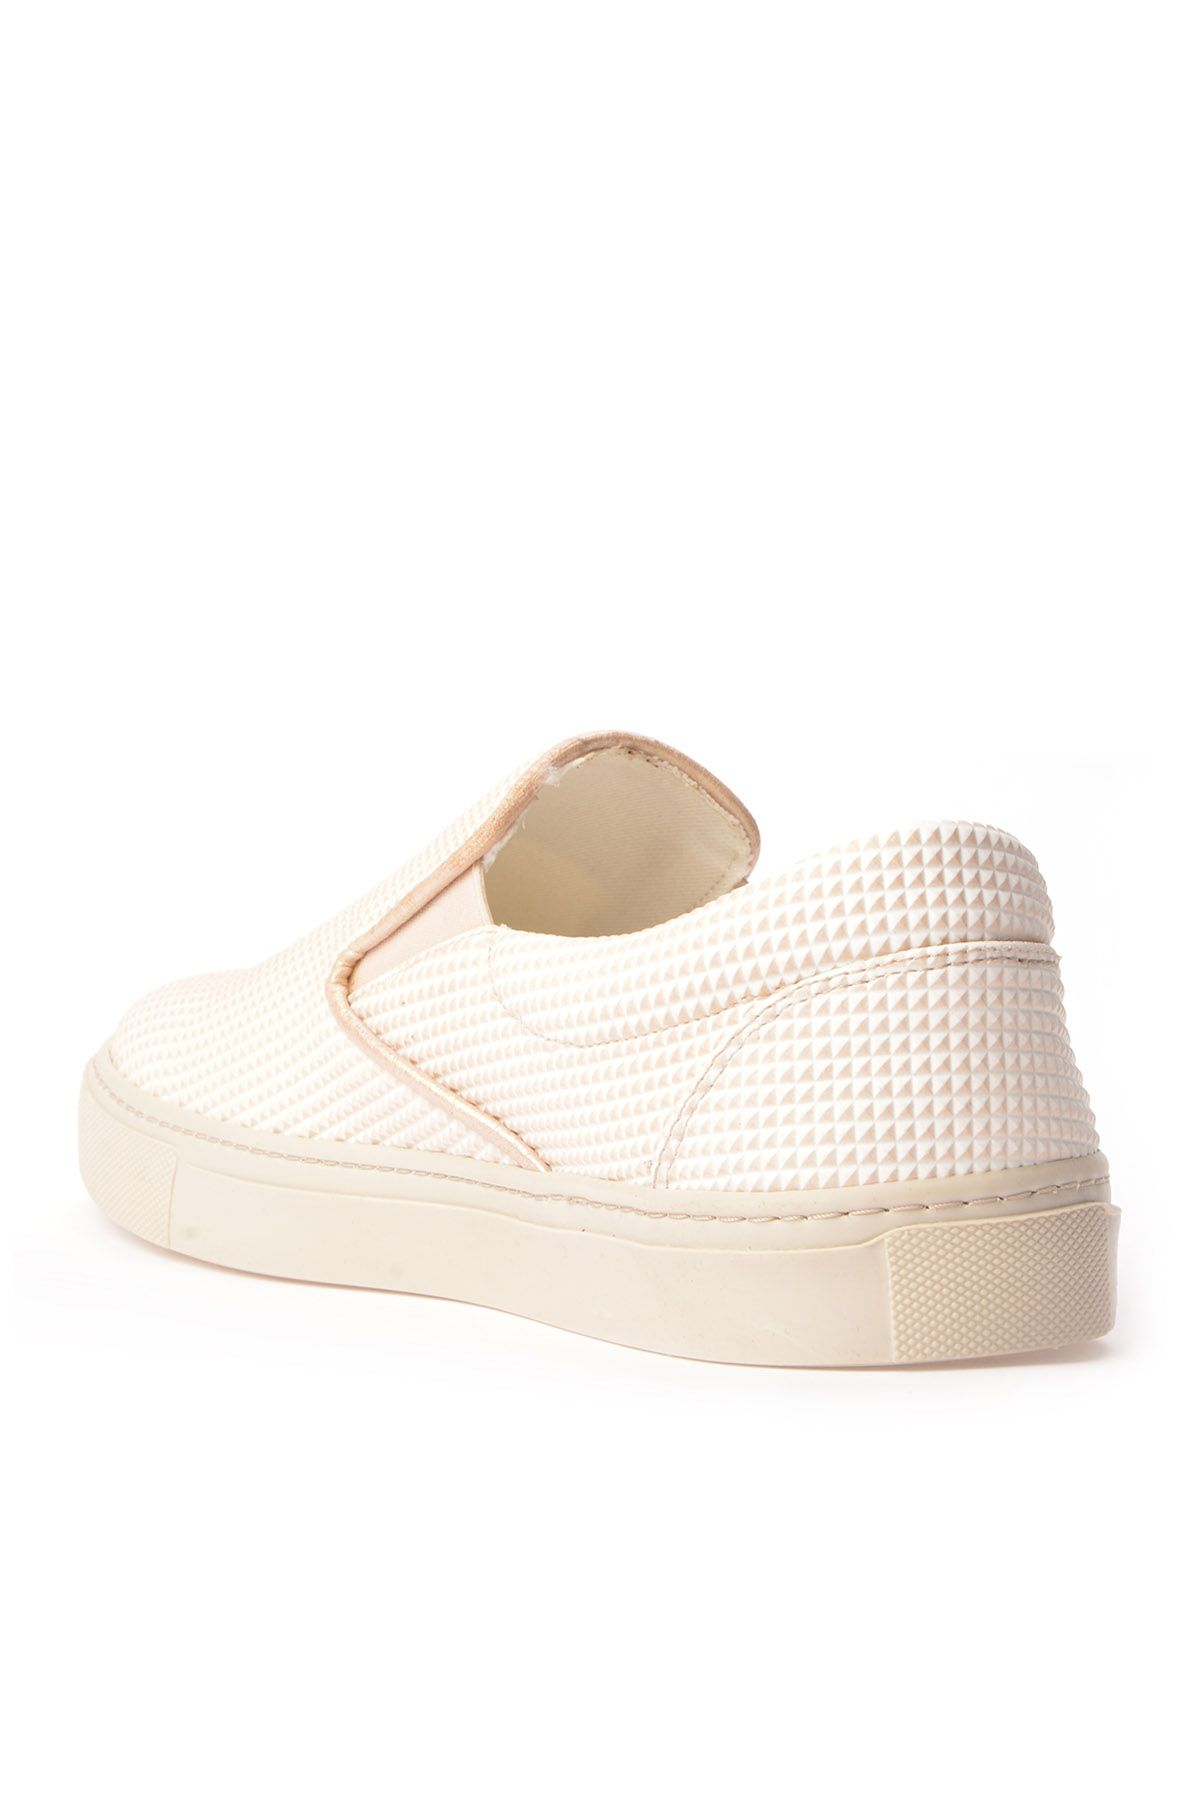 Art Goya Women Sneakers With Pyramid Pattern White